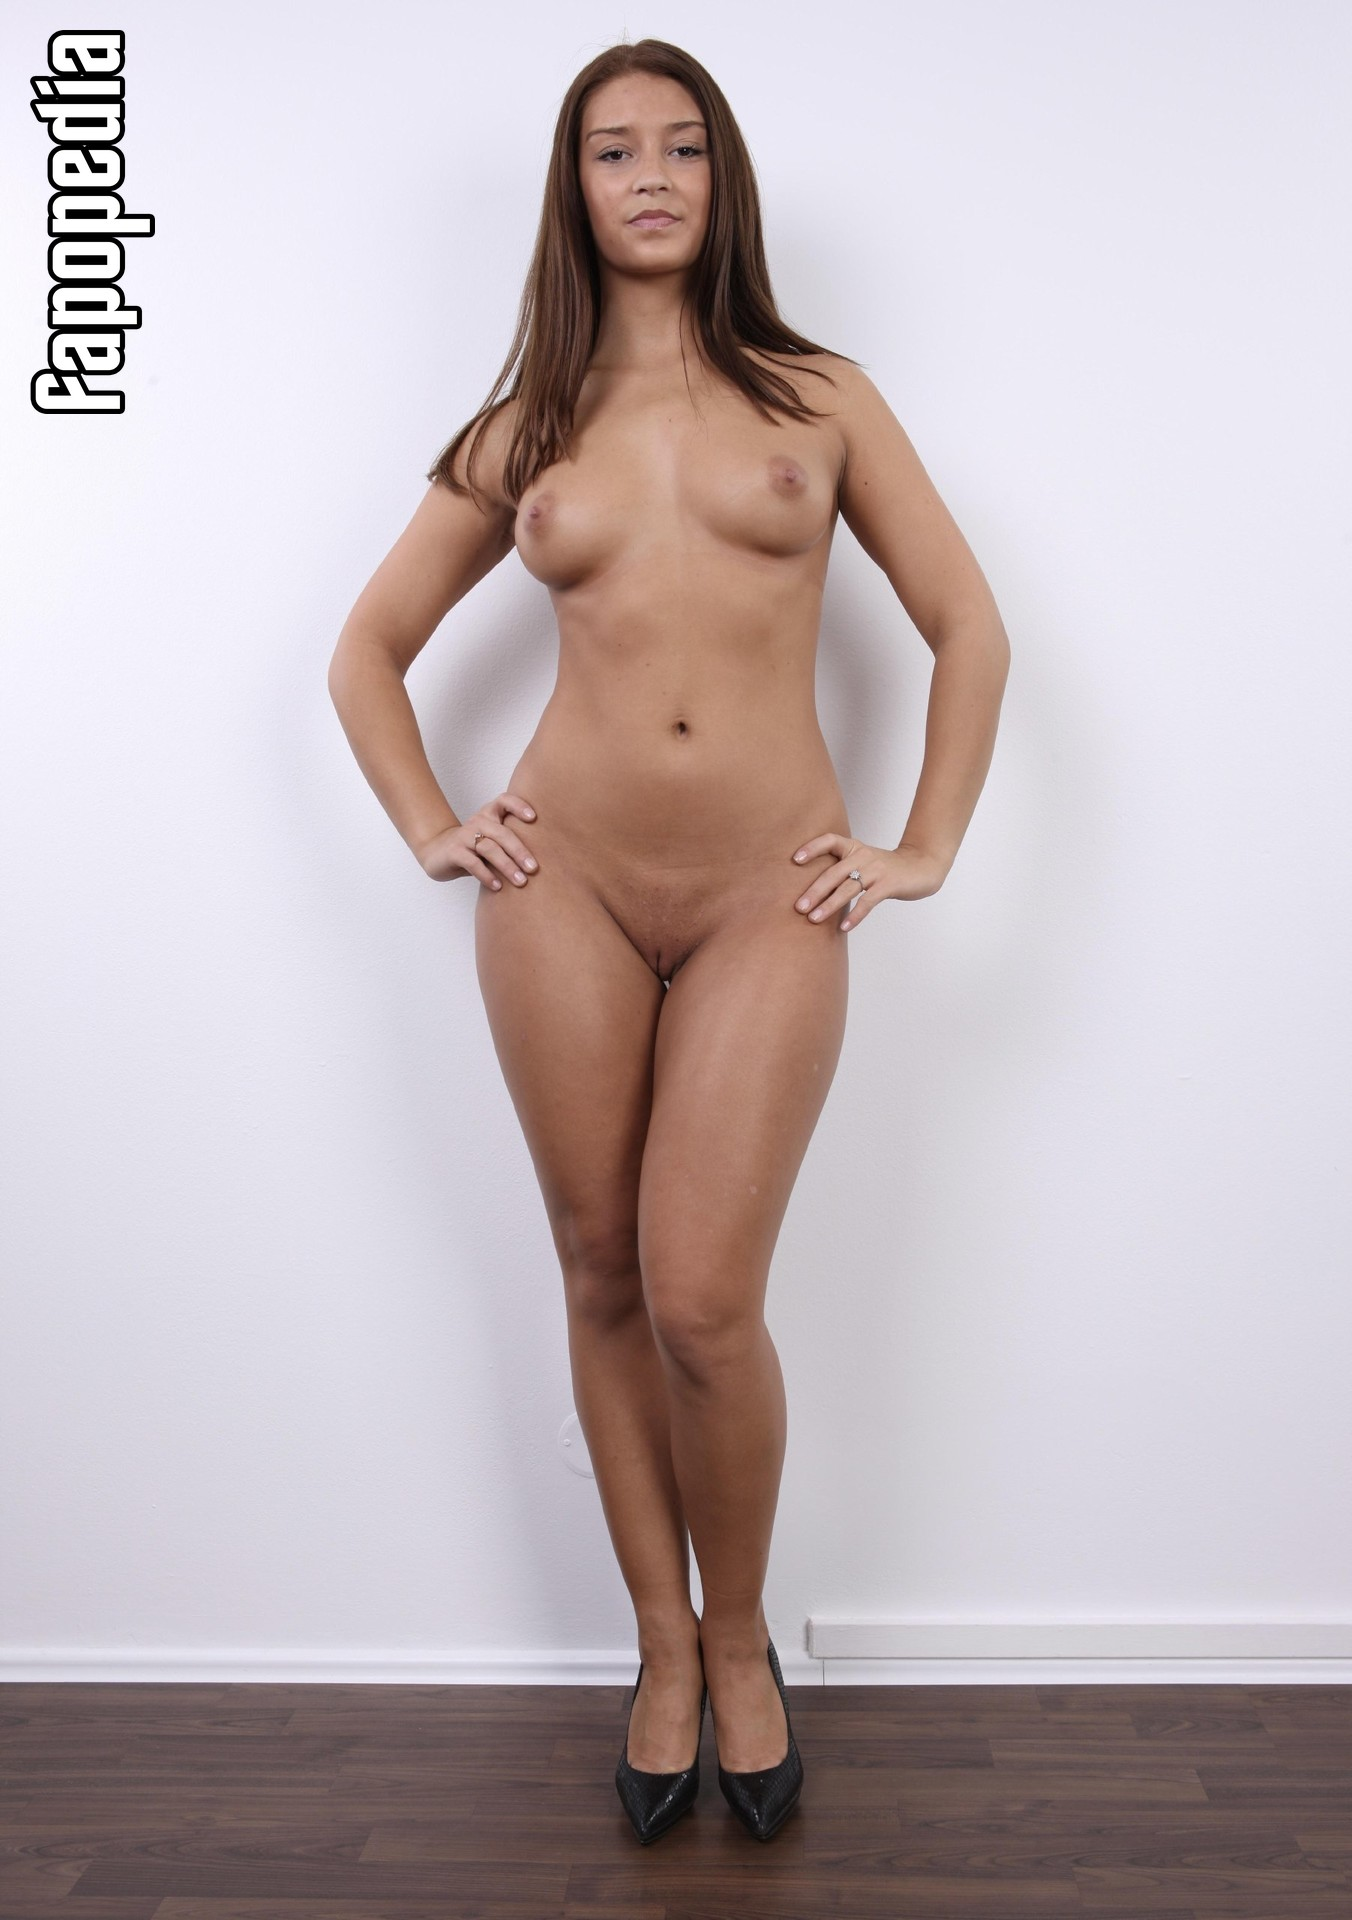 Cws145x Nude Leaks